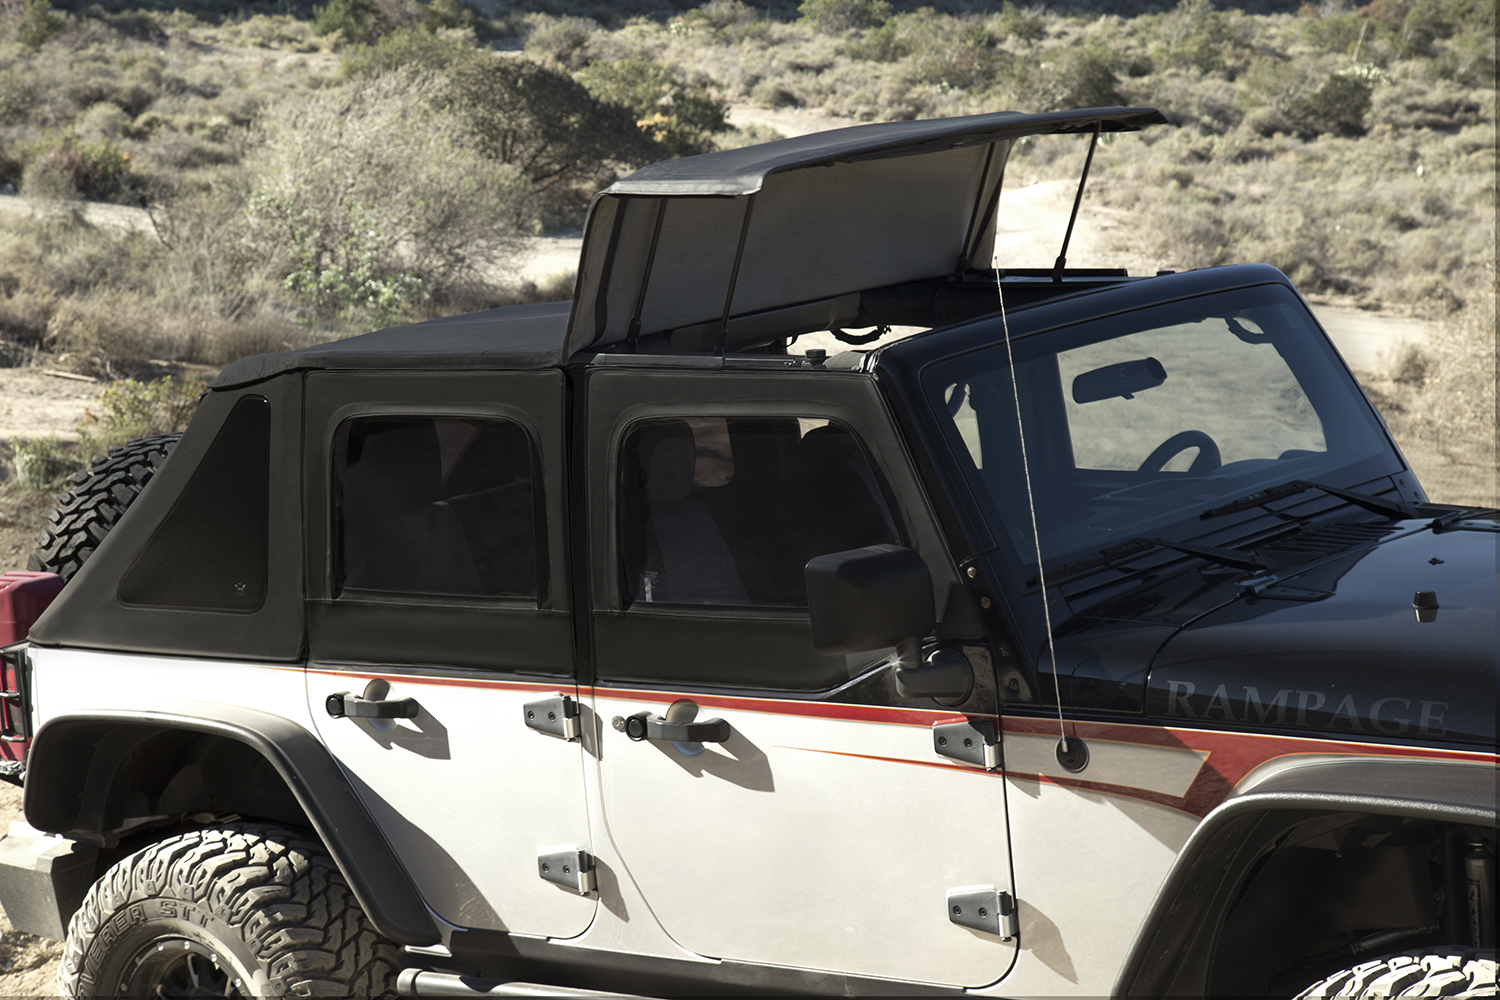 R&age Products is part of the Lund International family of businesses that include AMP Research AVS Belmor Bushwacker LUNDSt&ede Products ... & Rampage Products TrailView Soft Top™ for Jeep Wrangler JK | ATV ...